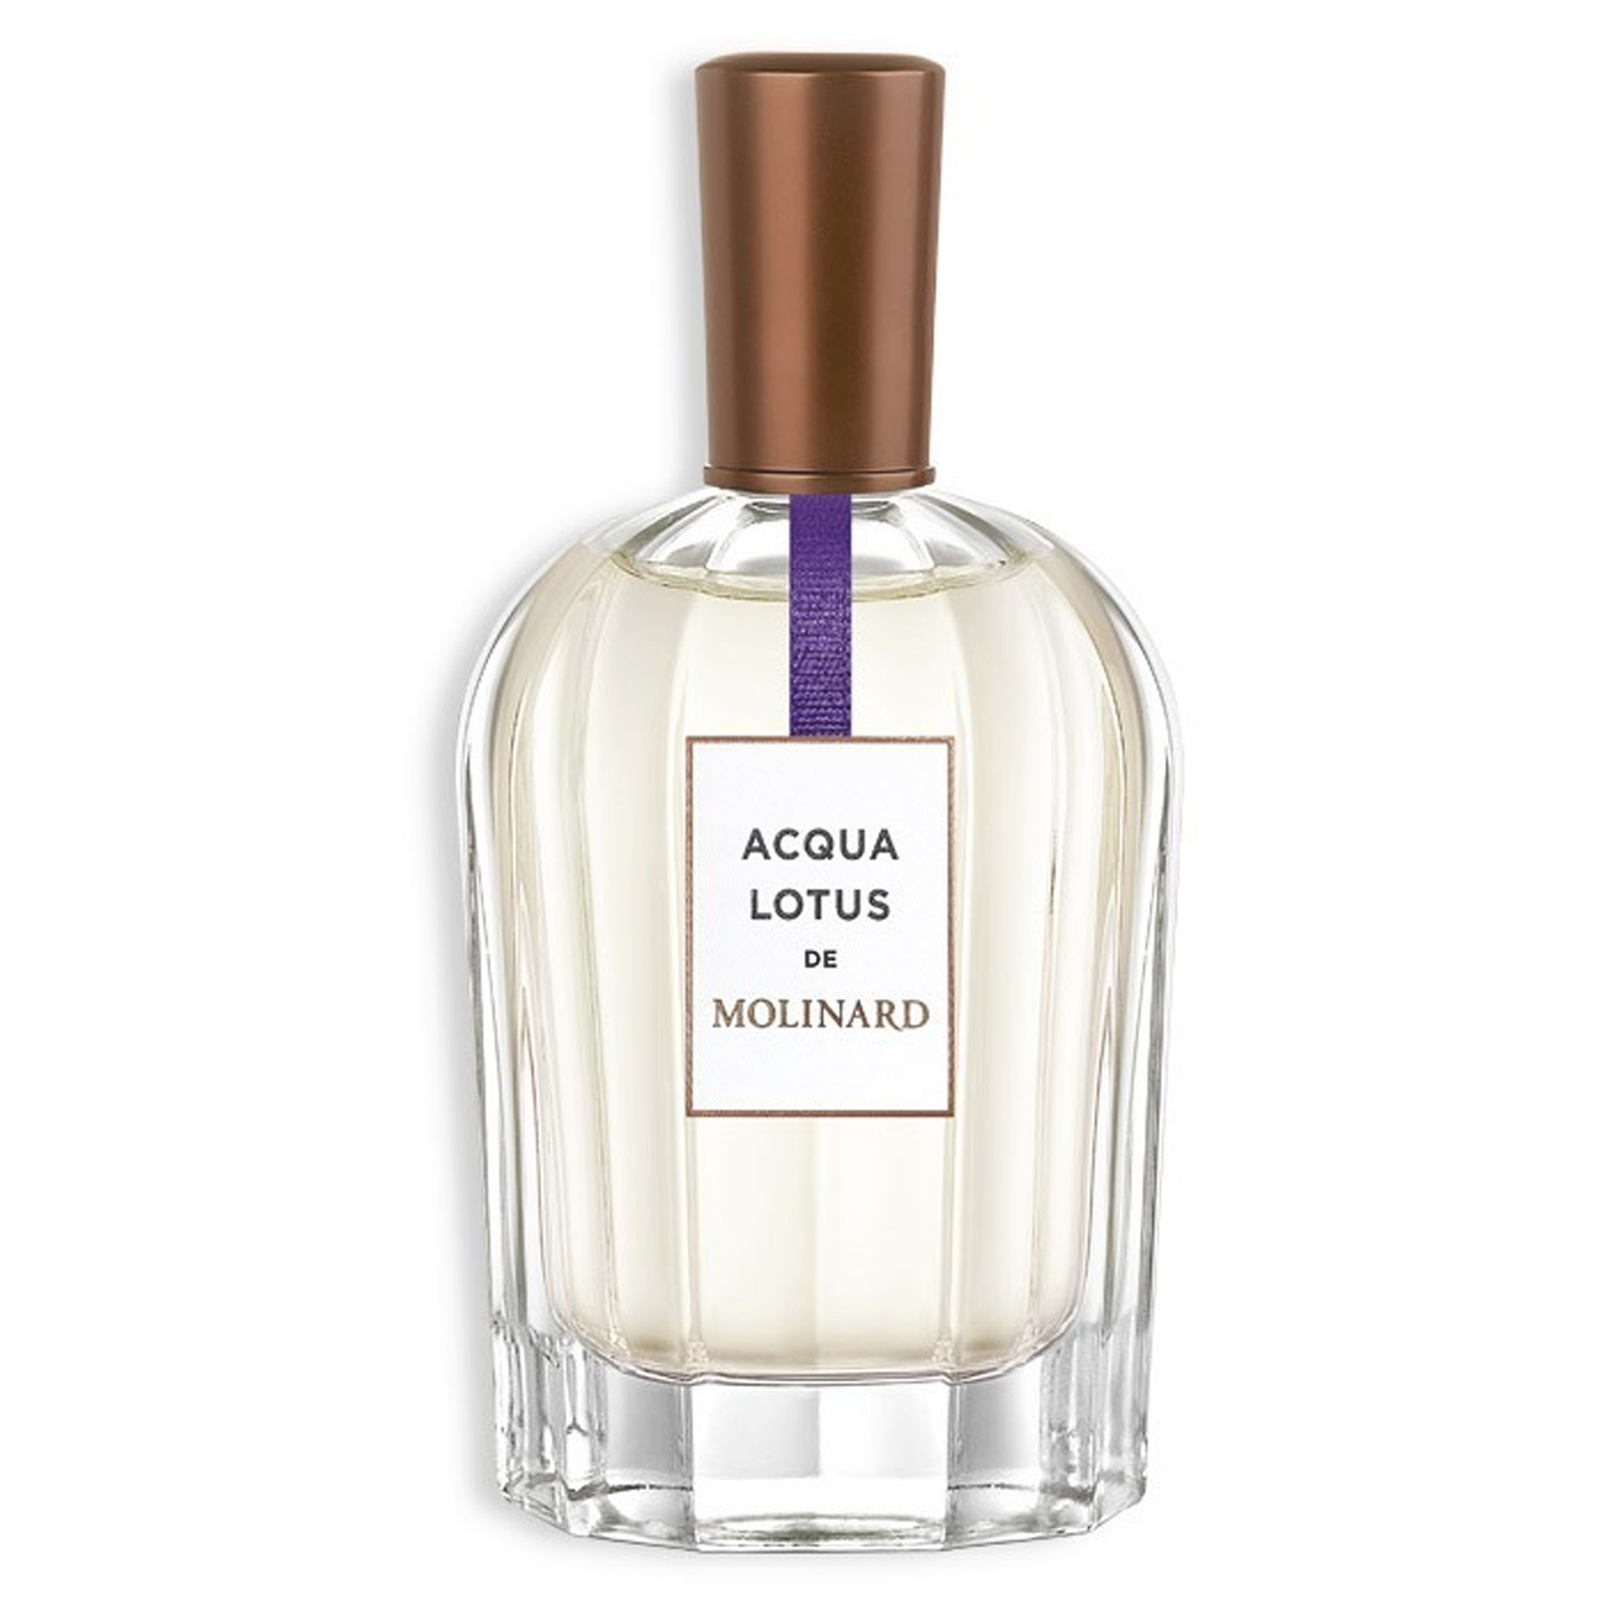 Acqua lotus profumo eau de parfum 90 ml